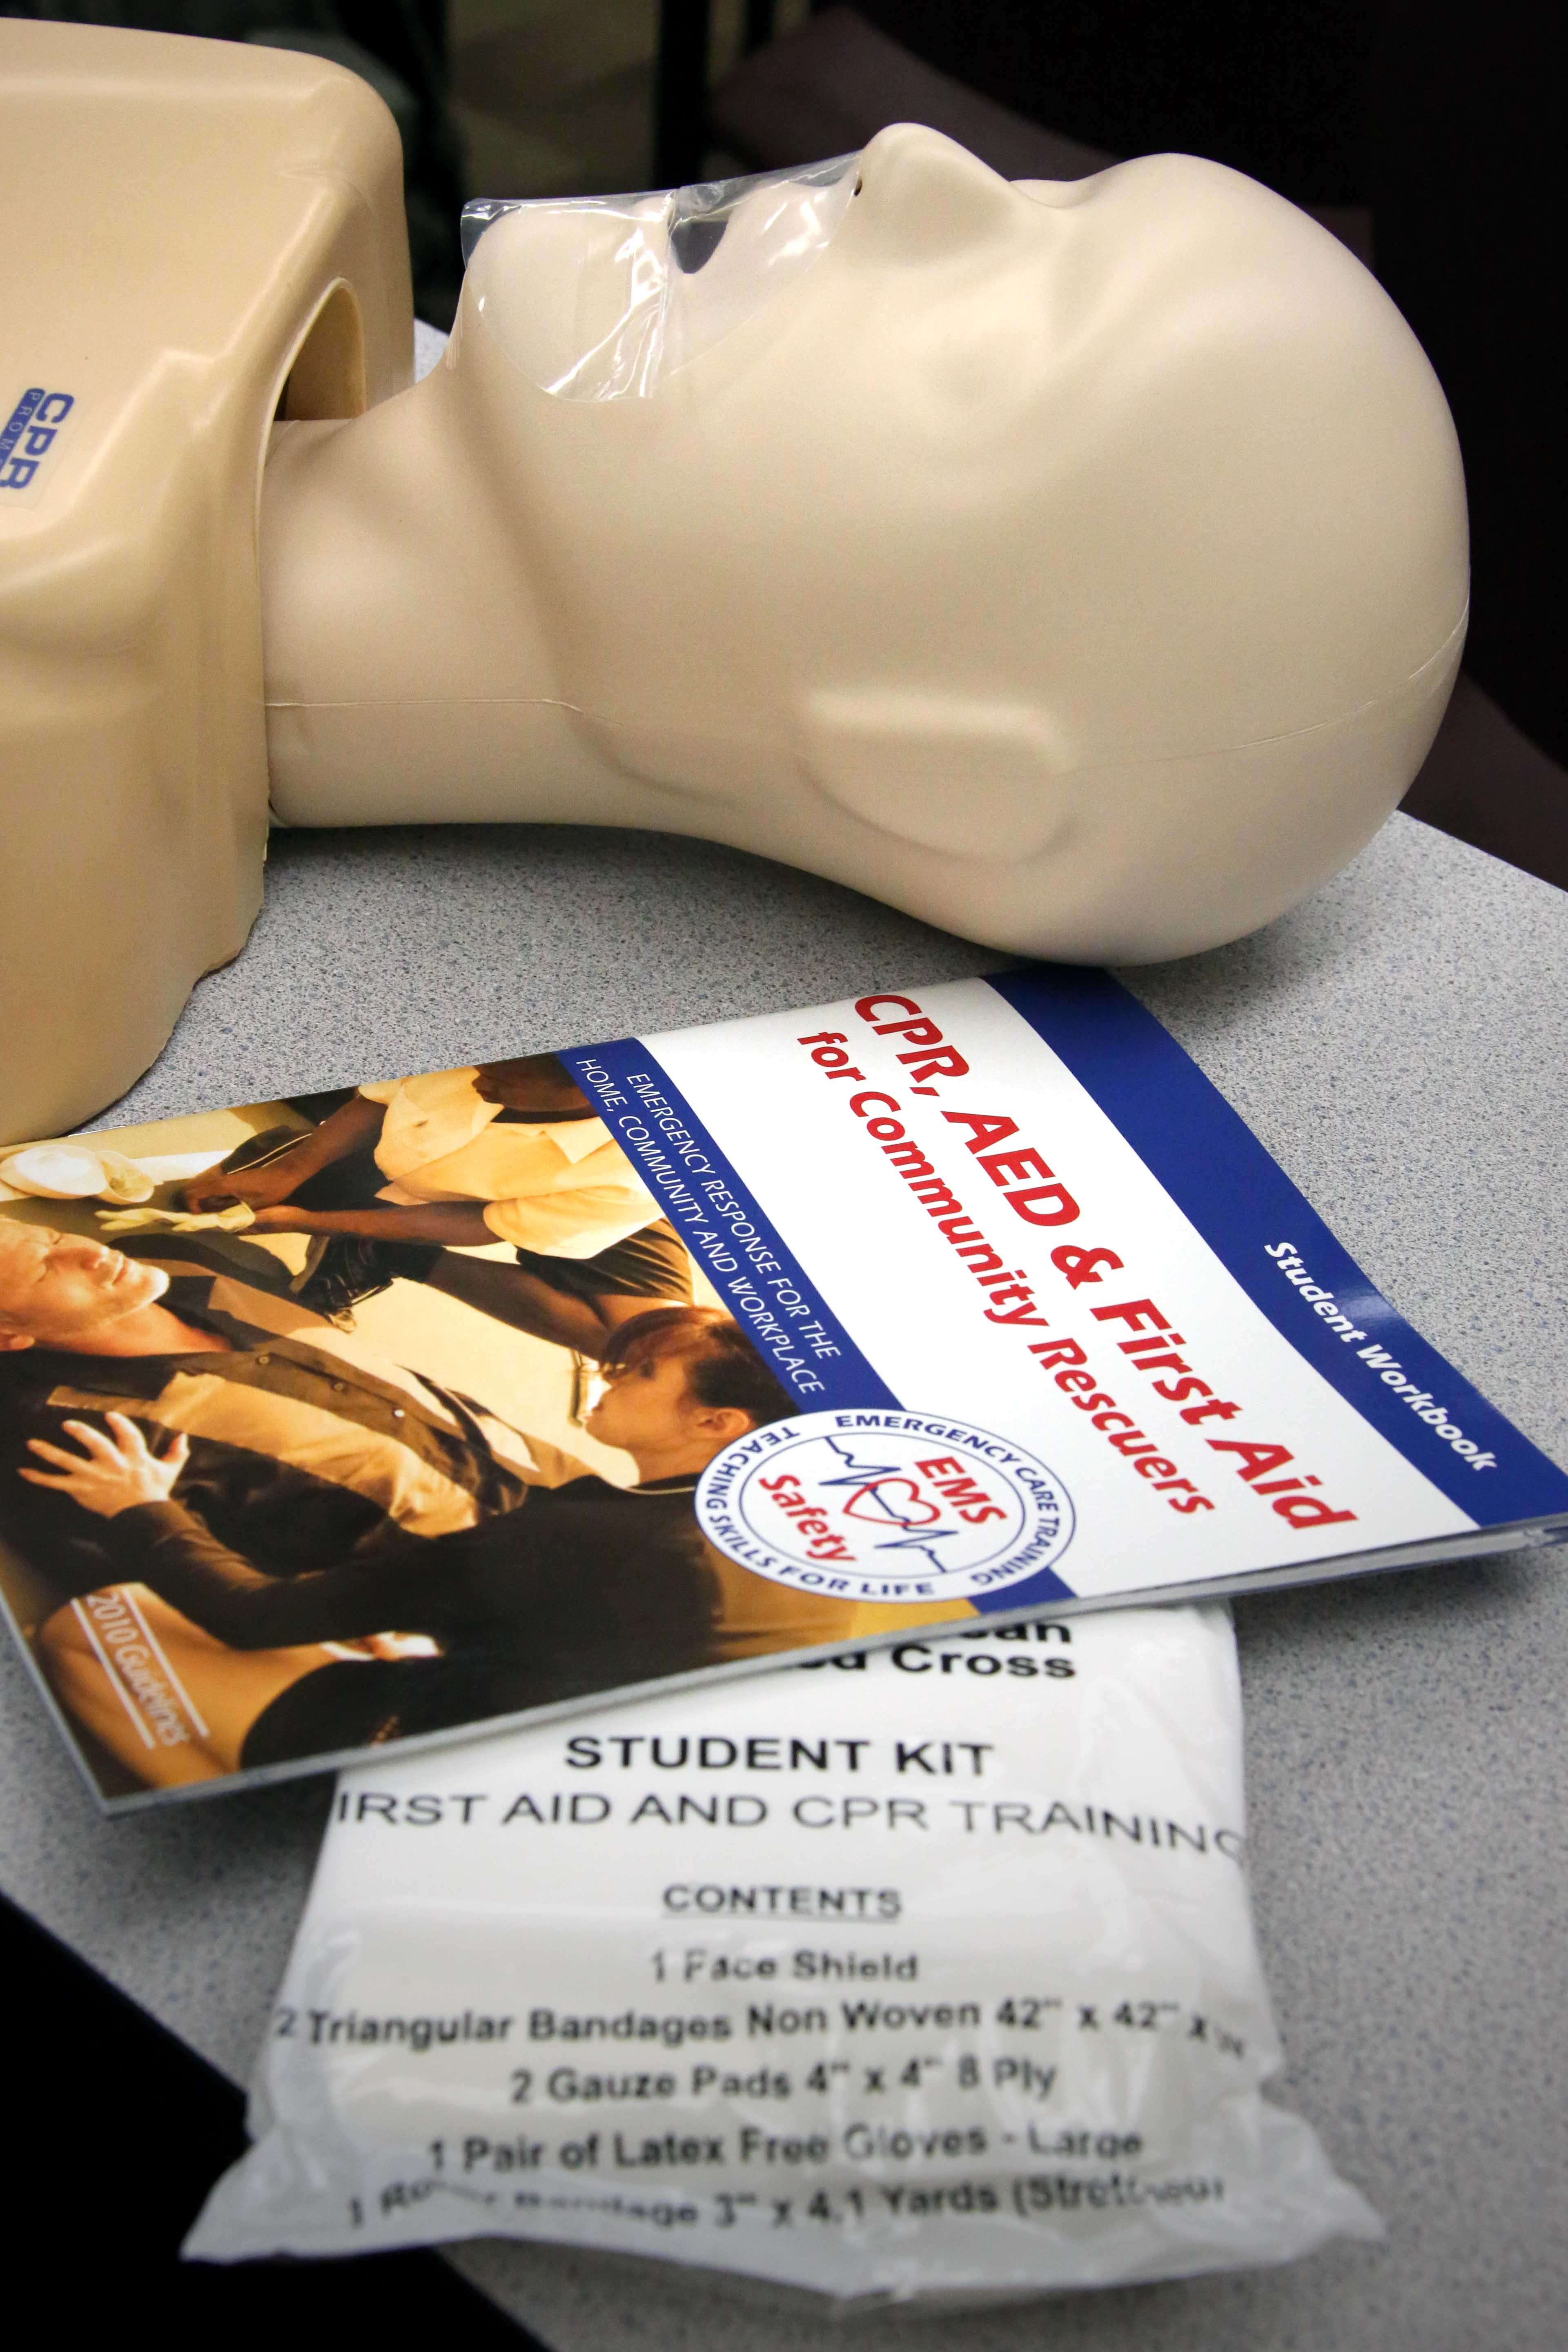 Photo of materials used during C.E.R.T.'s CPR, First Aid, and Automated External Defibrillator certification class